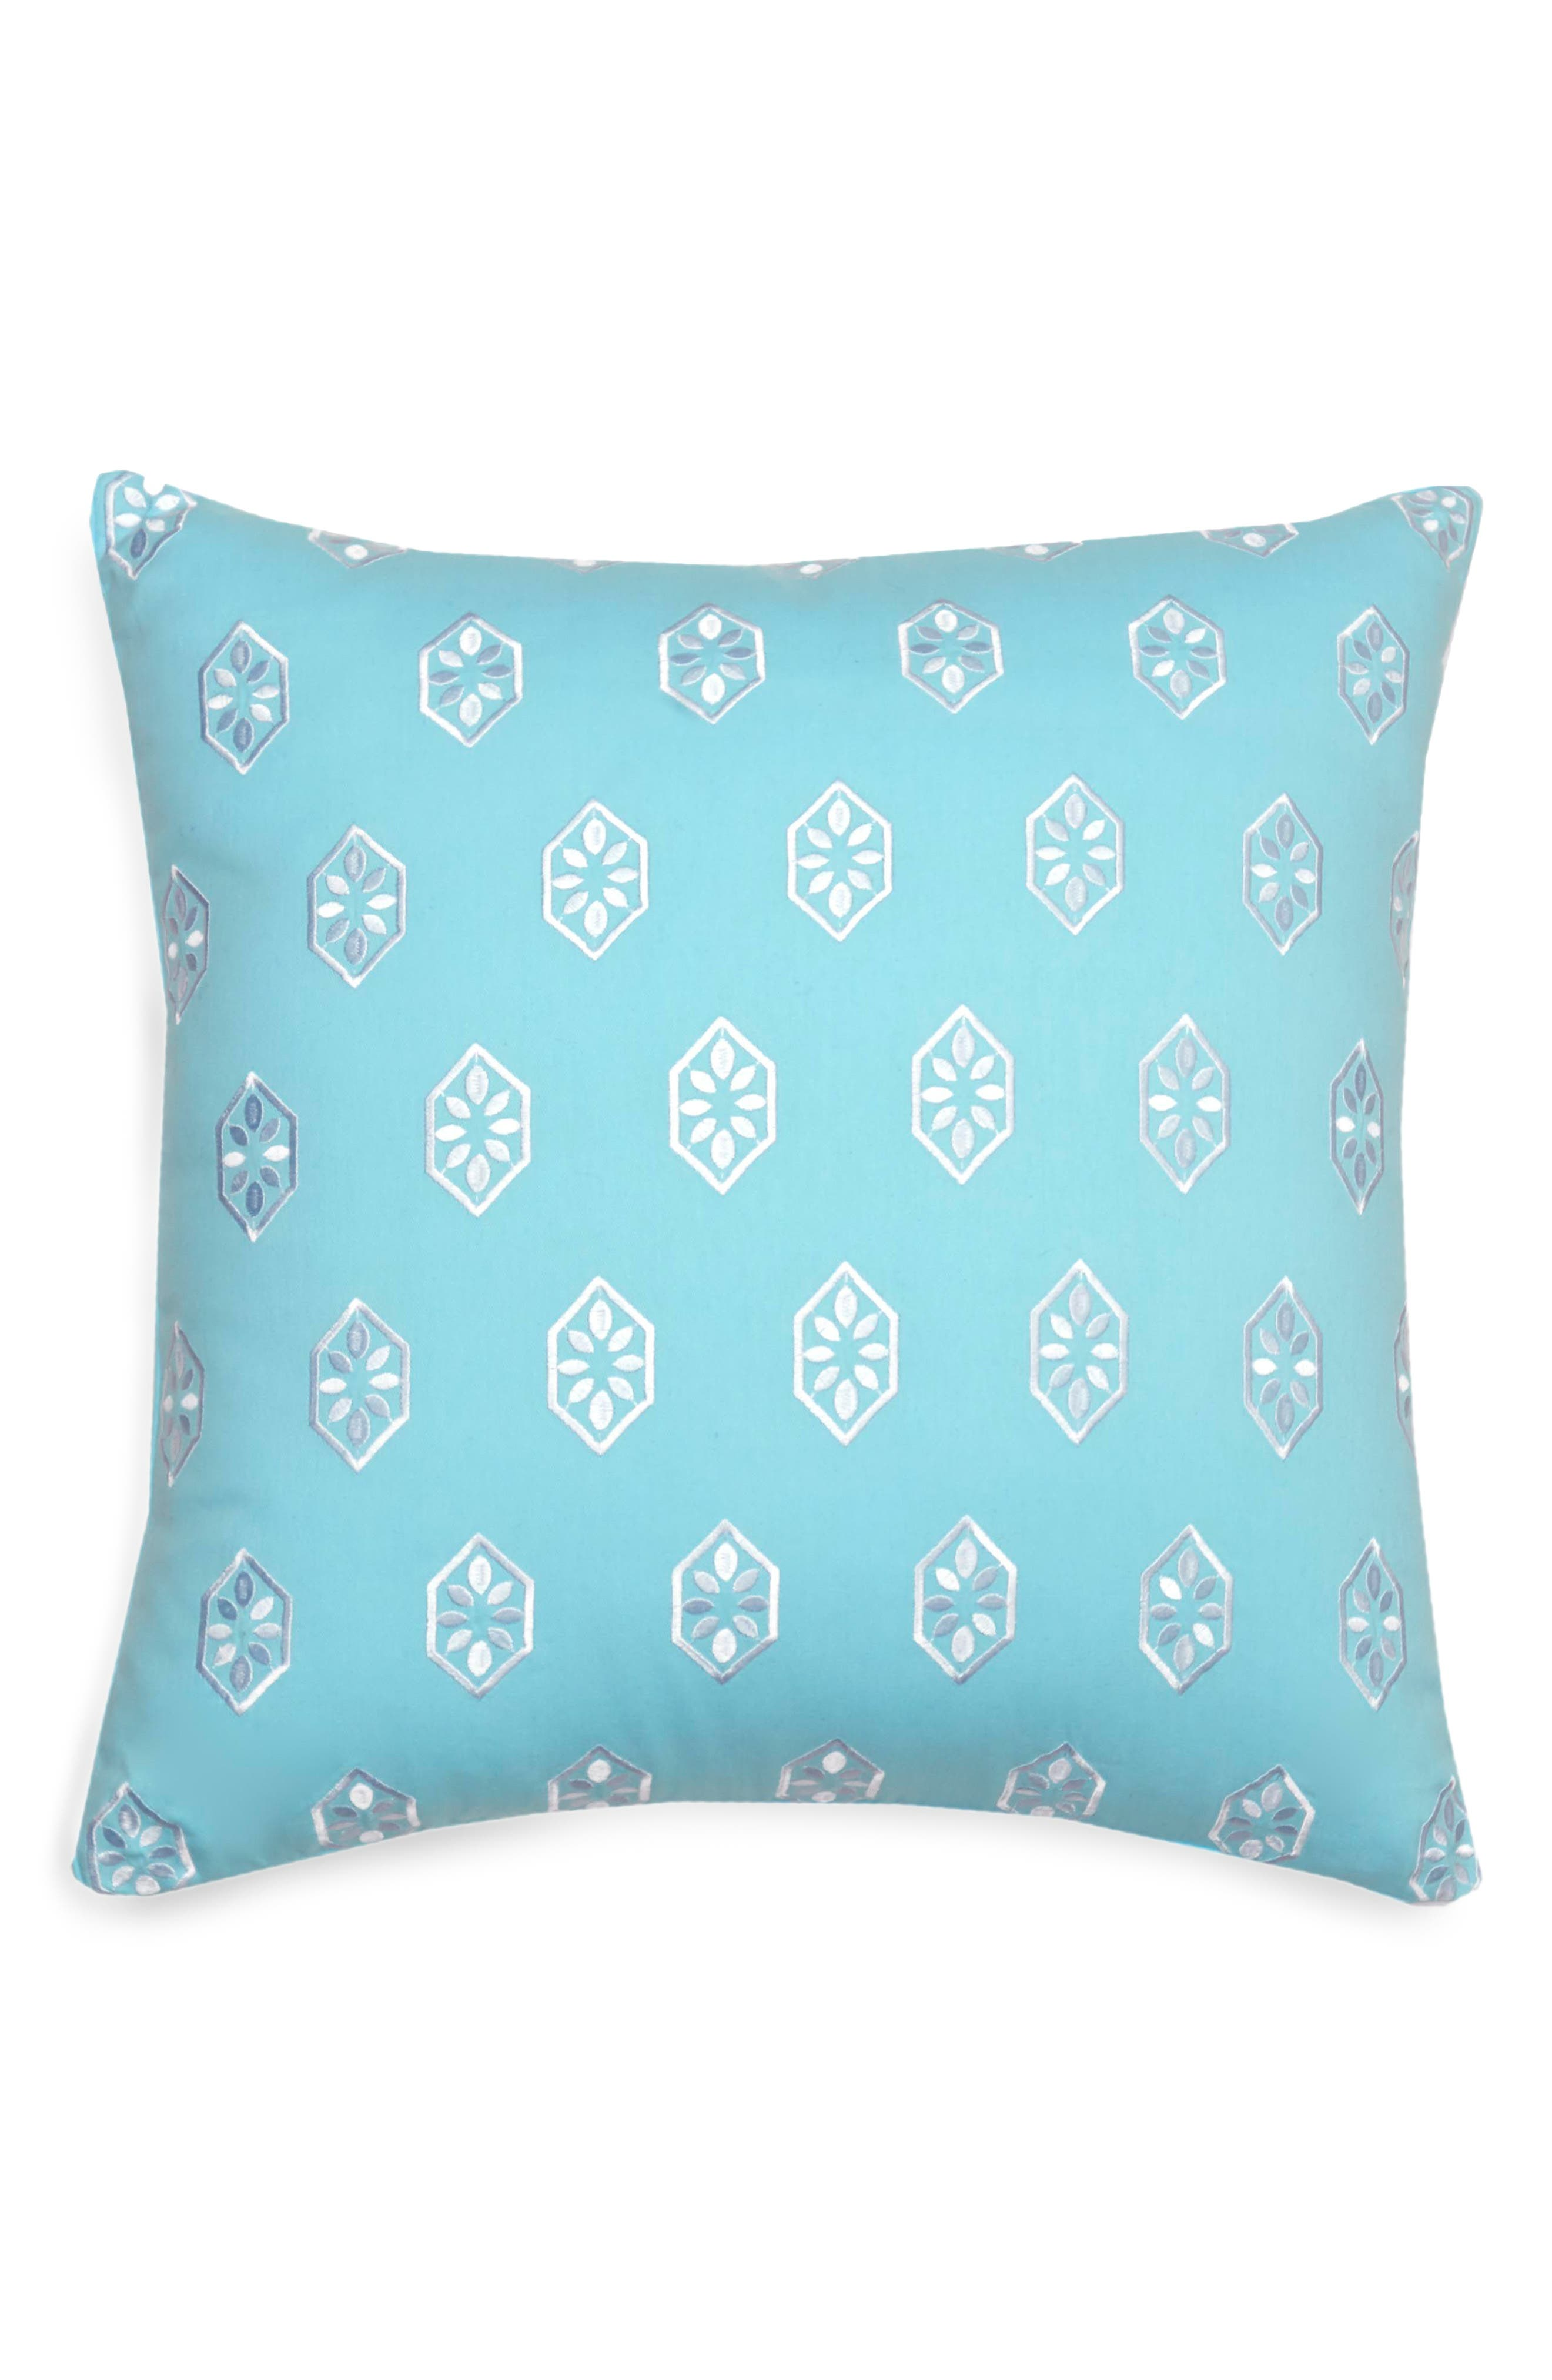 Summerville Embroidered Pillow,                             Main thumbnail 1, color,                             400